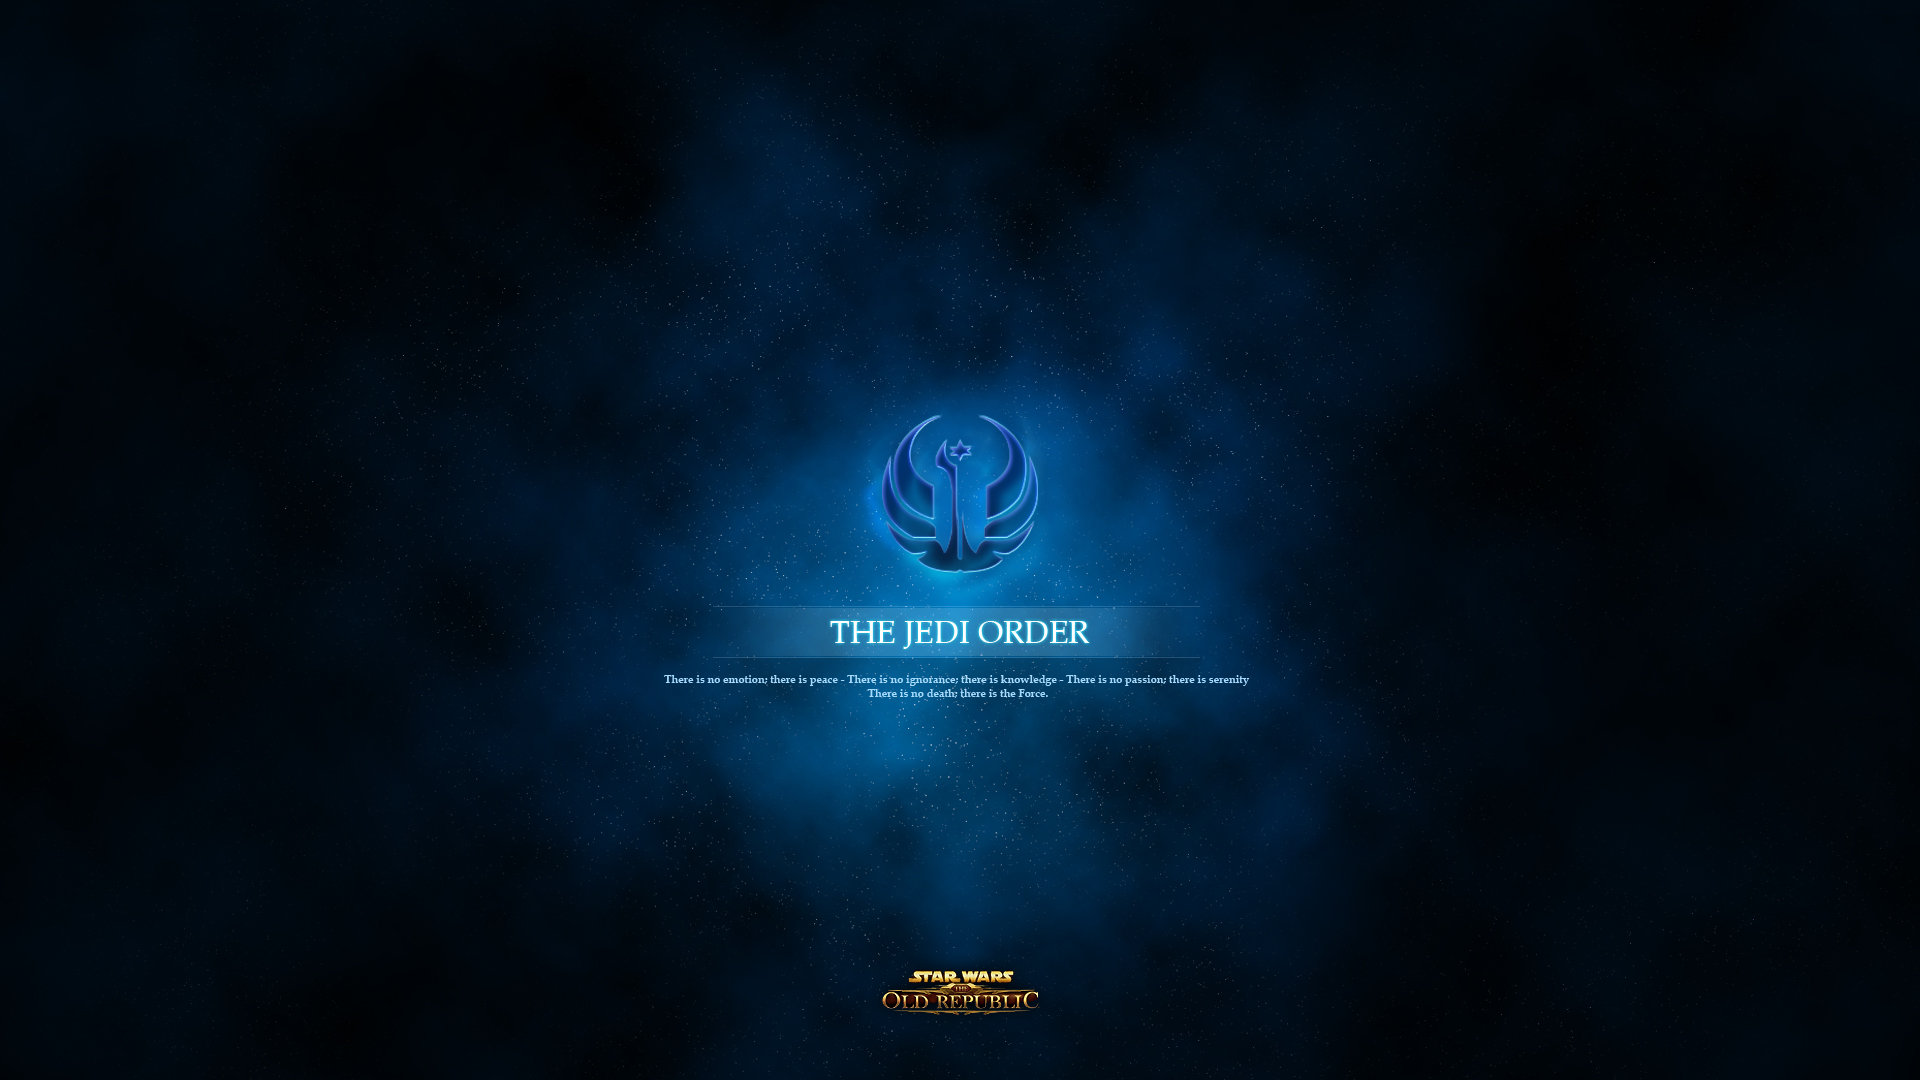 Free Download Star Wars The Old Republic Wallpaper ID105957 Full Hd For Computer